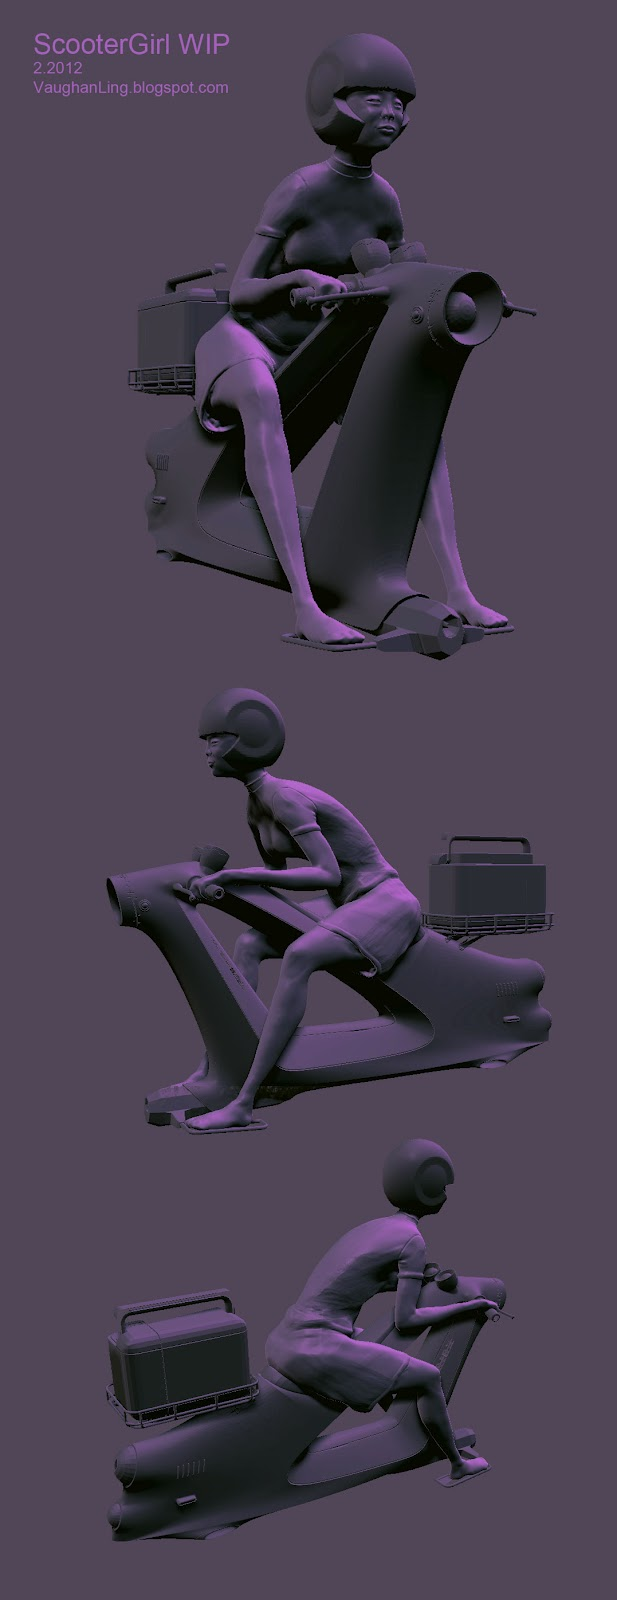 Brought in a scooter model from modo for posing reference